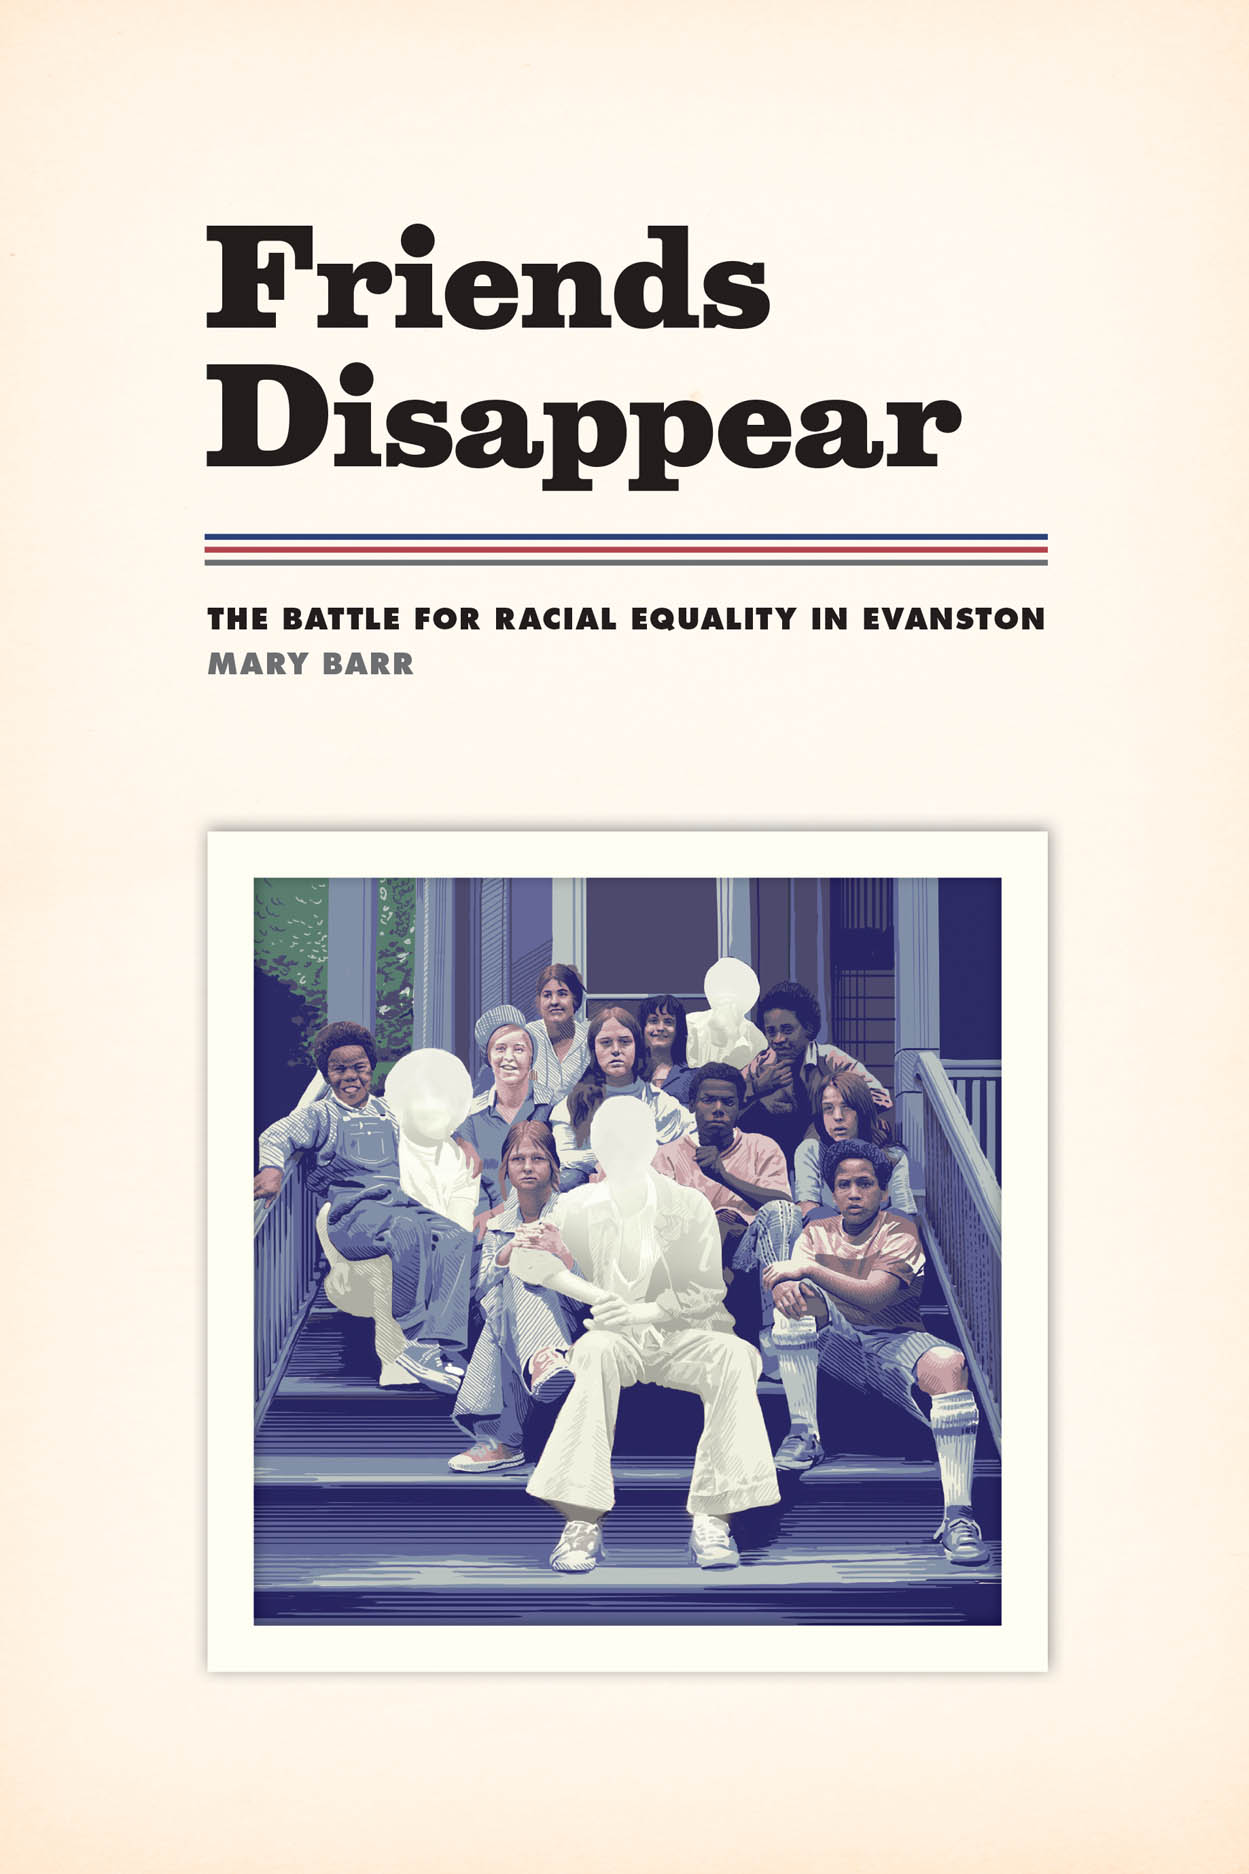 Friends Disappear: The Battle for Racial Equality in Evanston